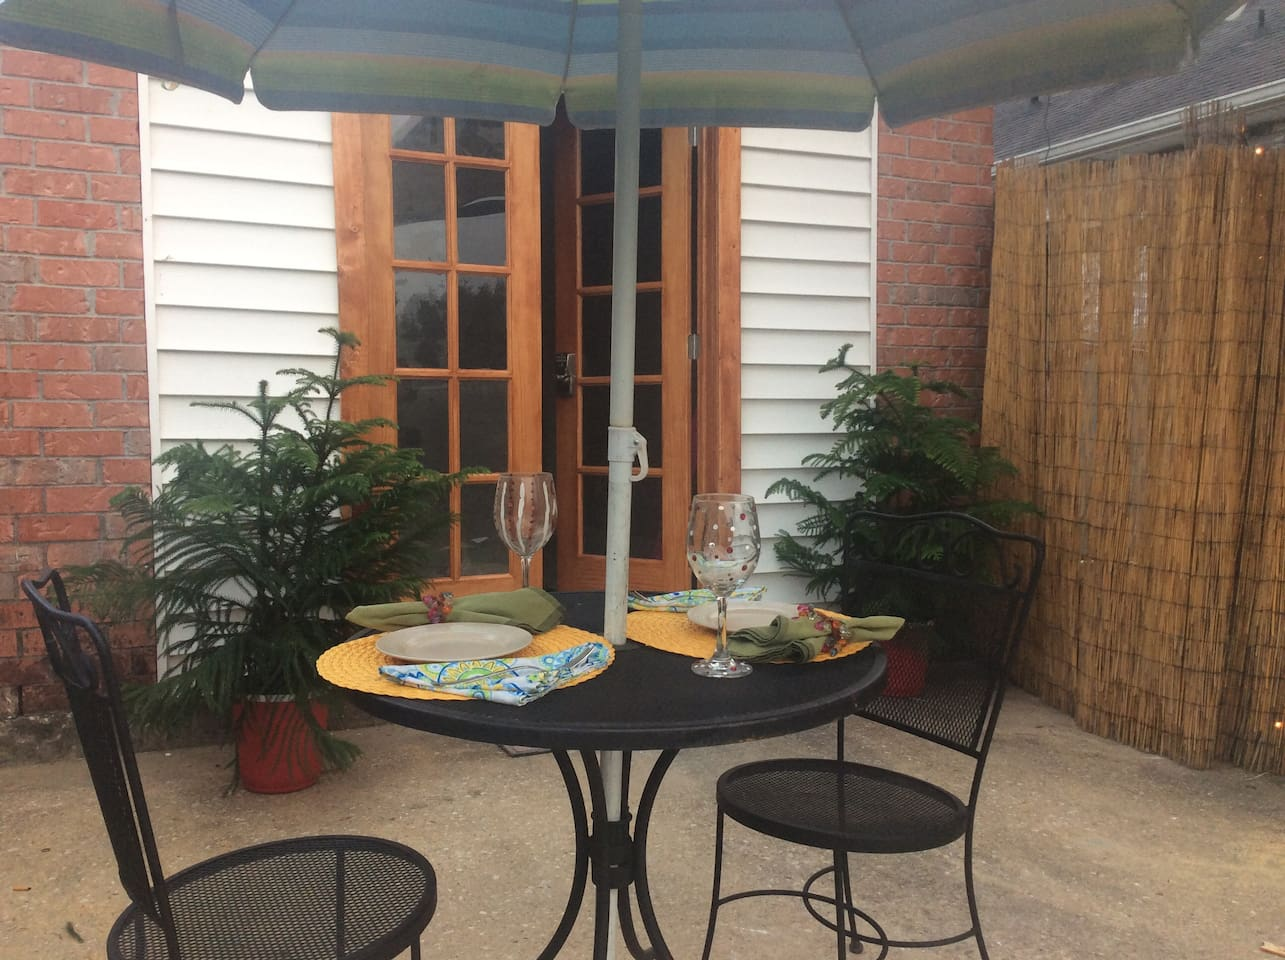 Guest House Studio Apt has private entry  and garden area- just minutes from City Park New Orleans!